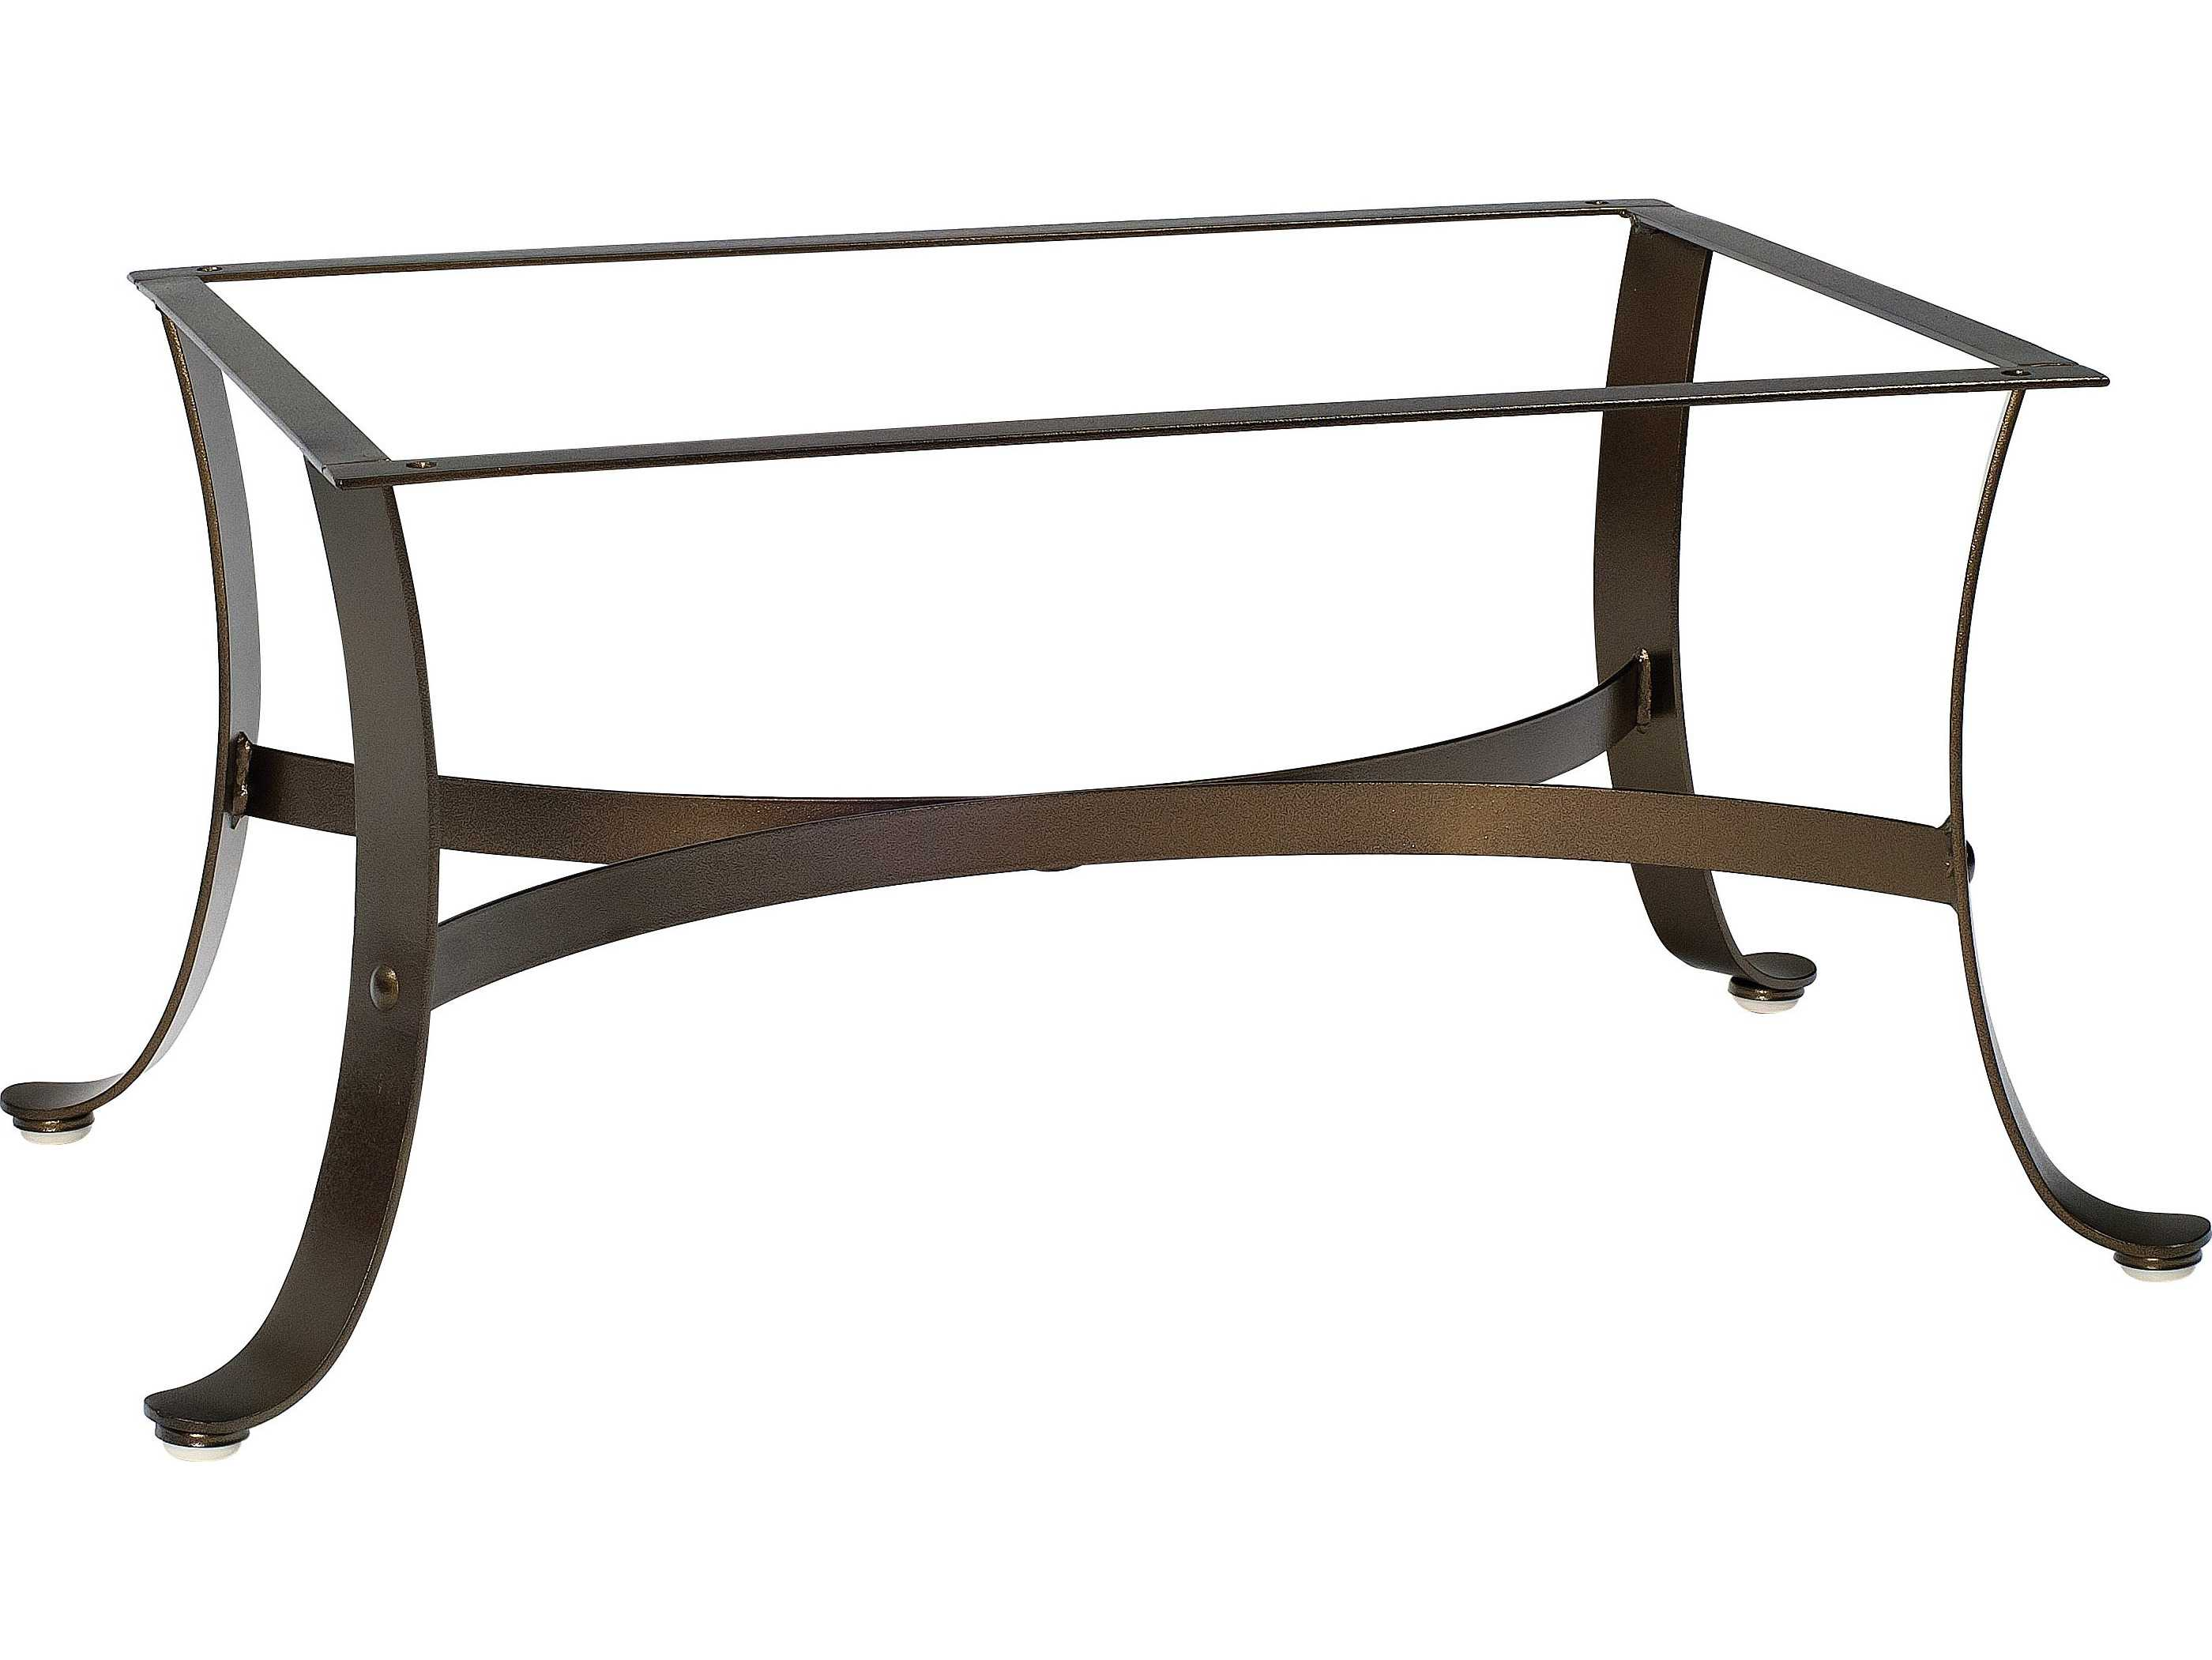 Woodard Cascade Wrought Iron Coffee Table Base 2w4400: wrought iron coffee table bases